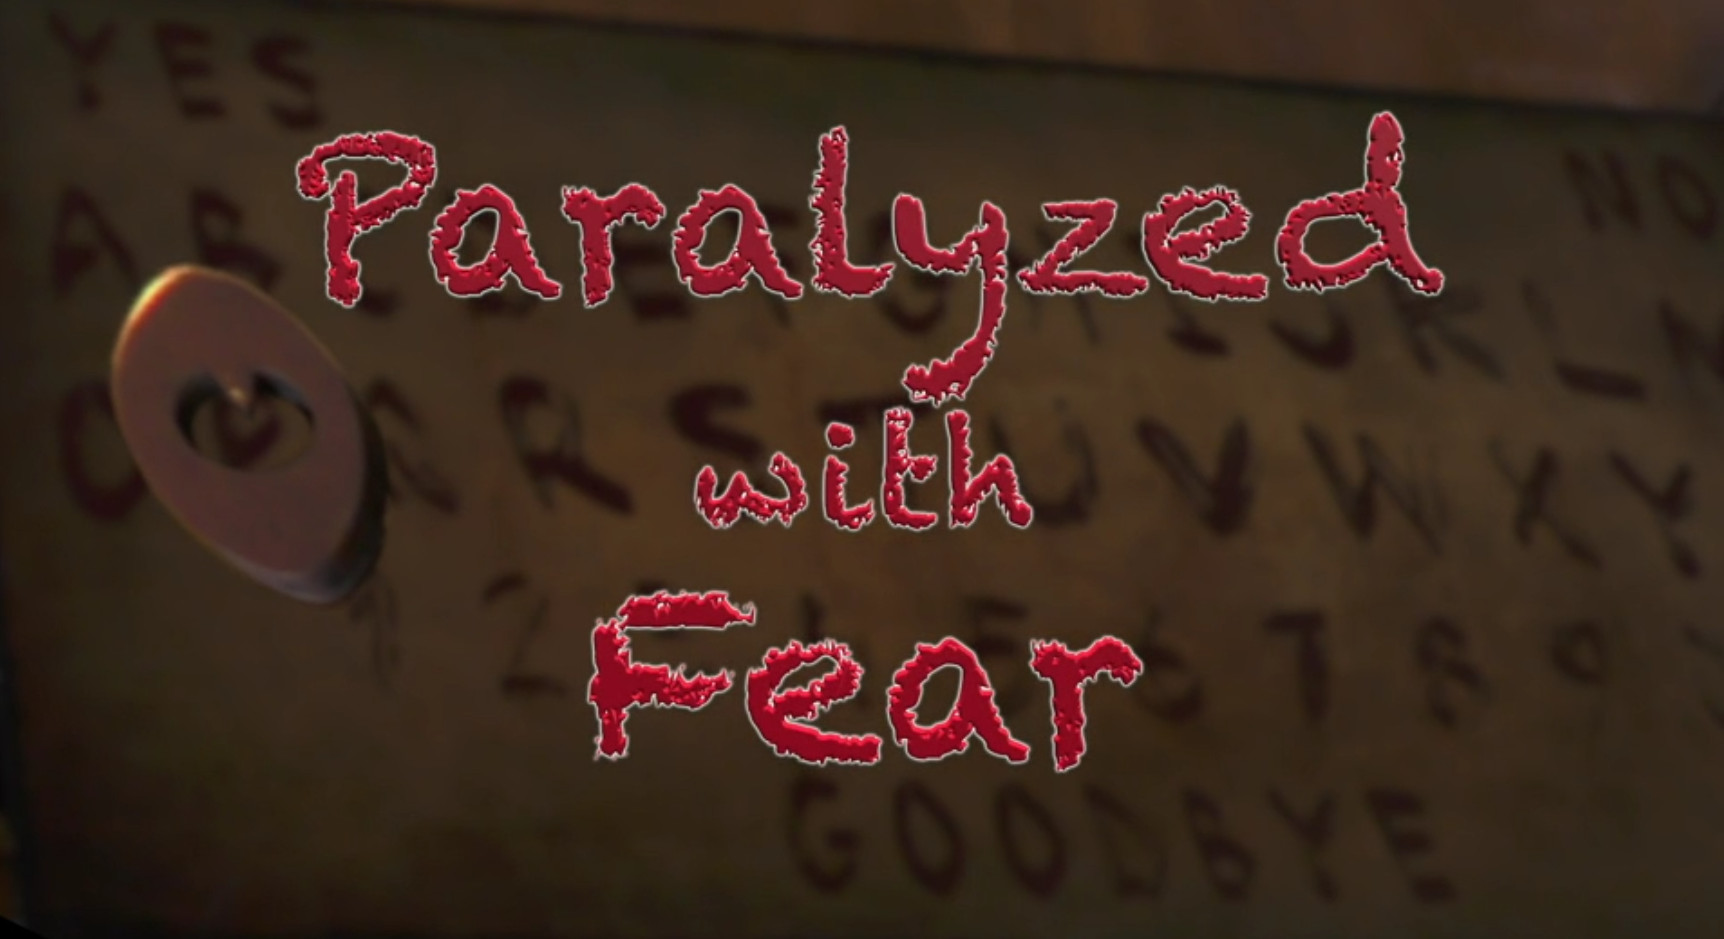 Paralyzed with Fear (2019)